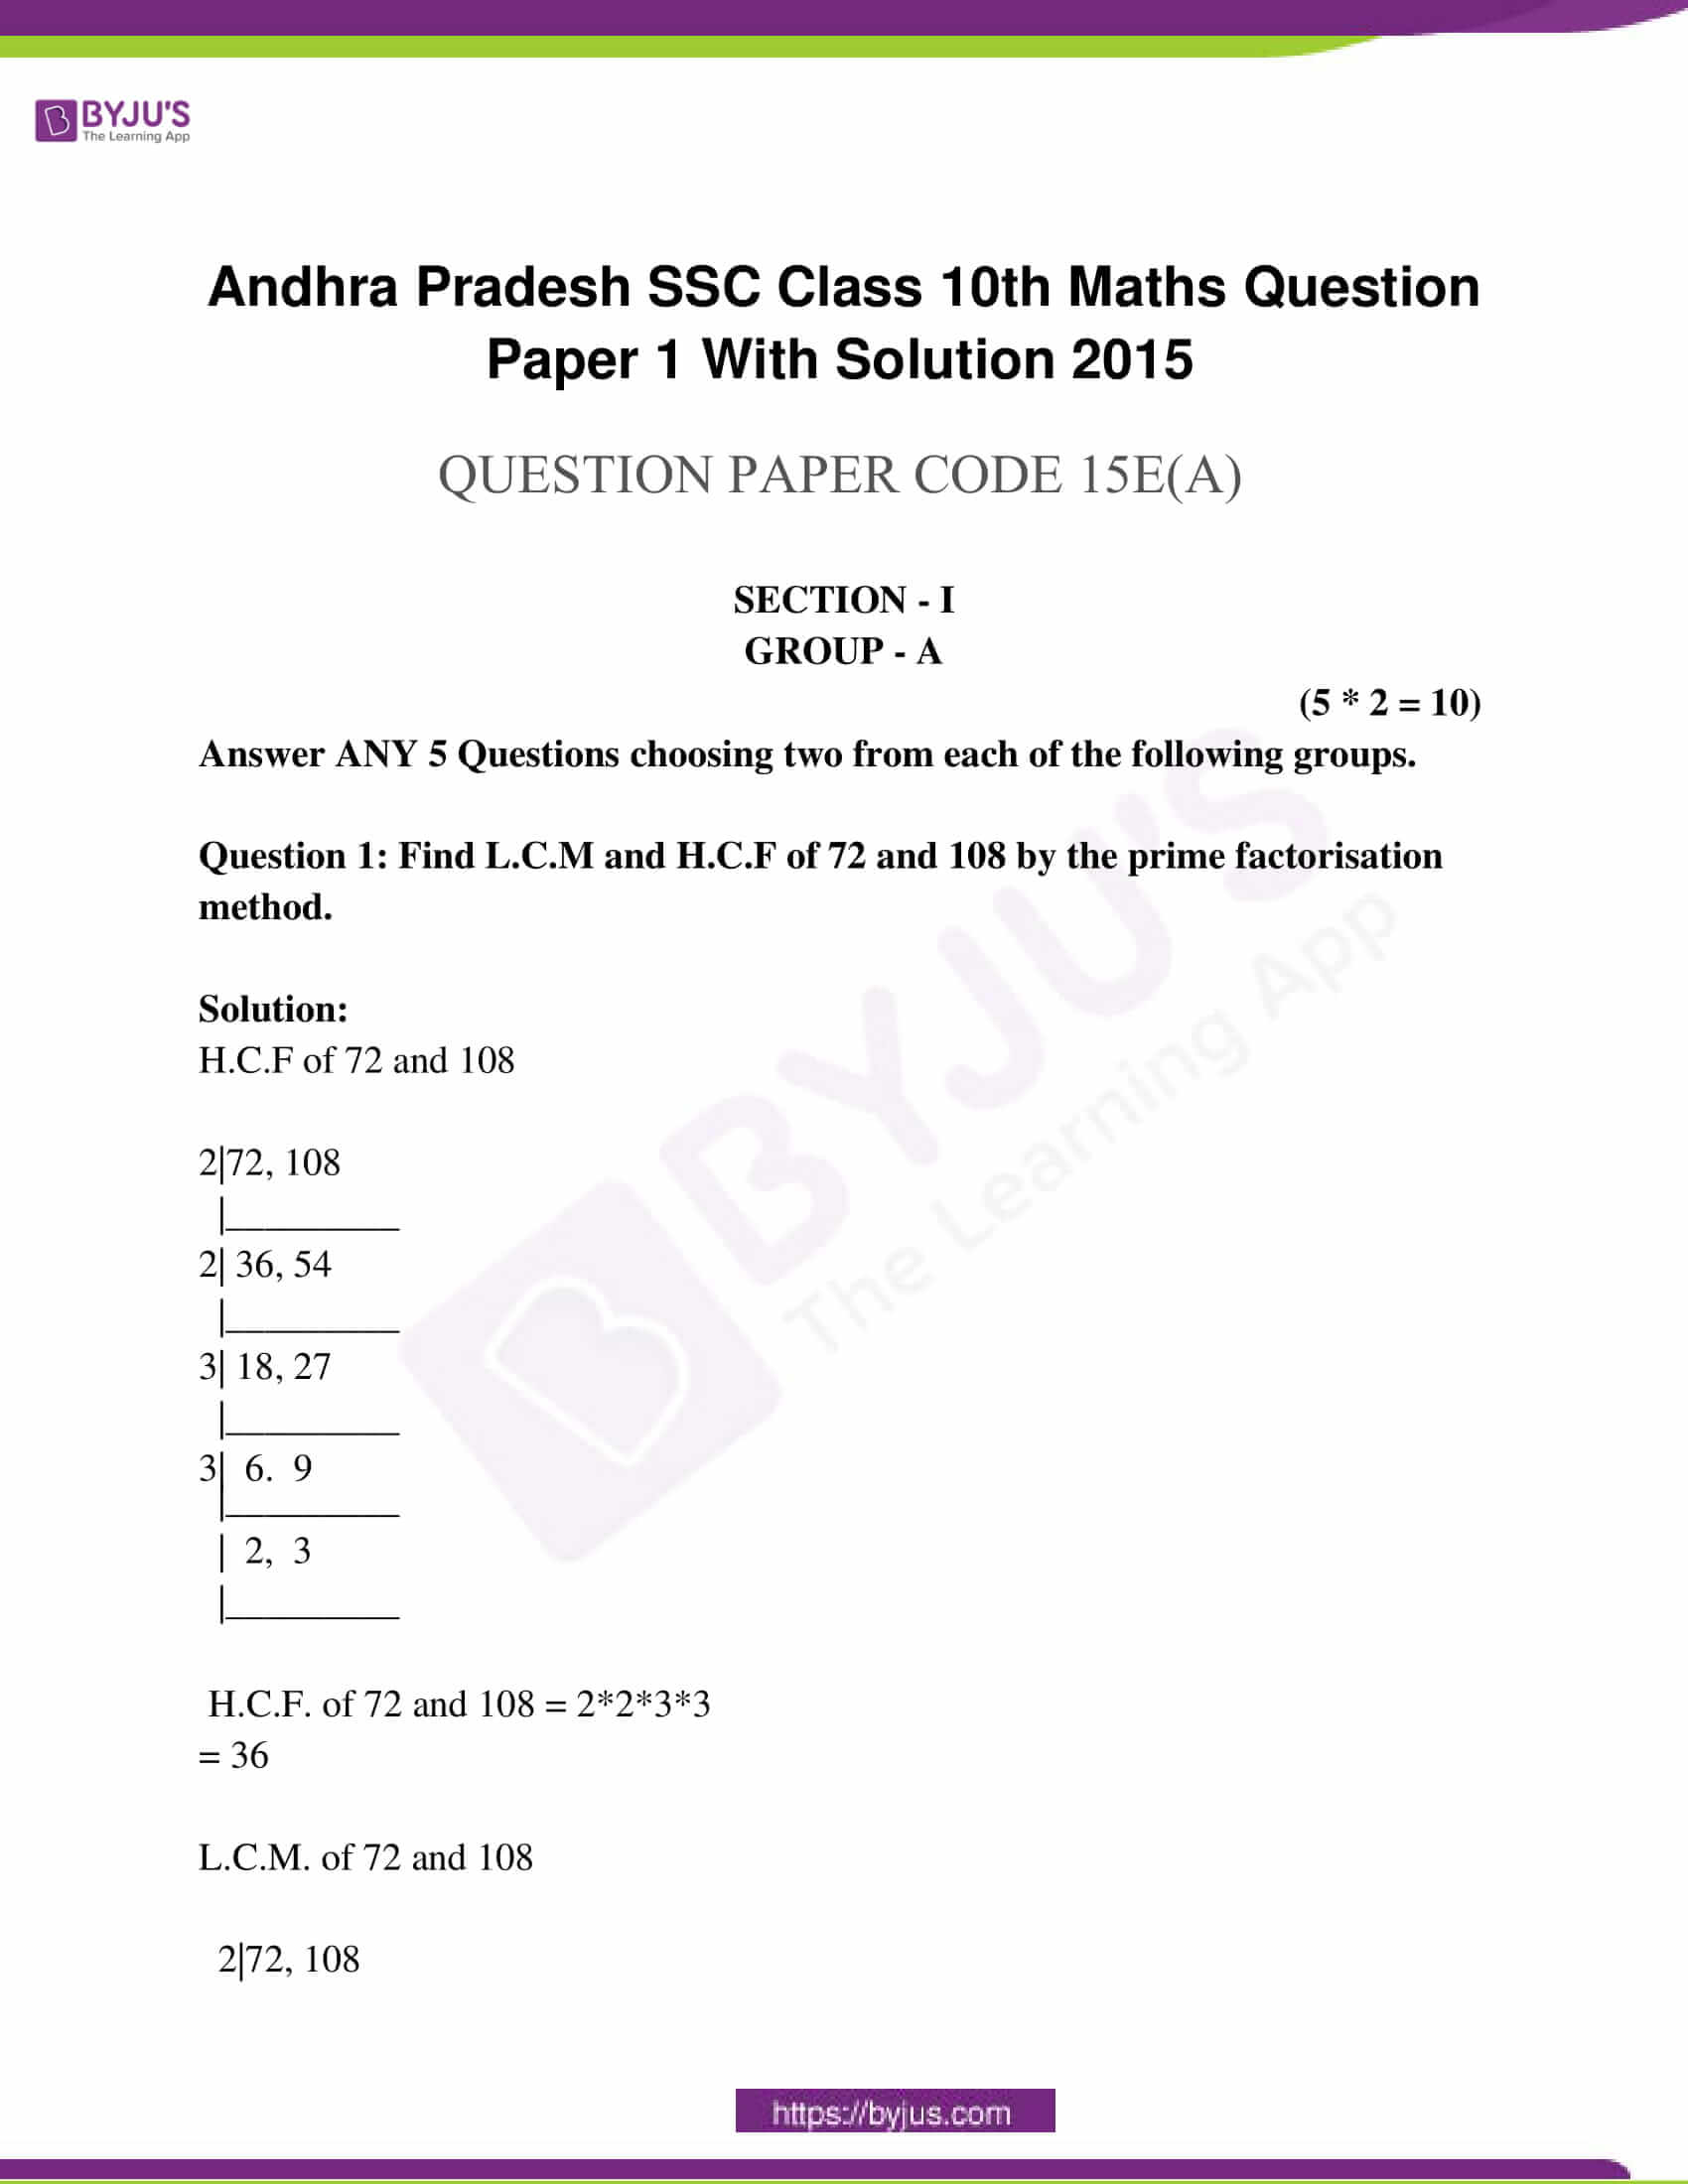 ap class 10 maths question paper 1 sol march 2015 01